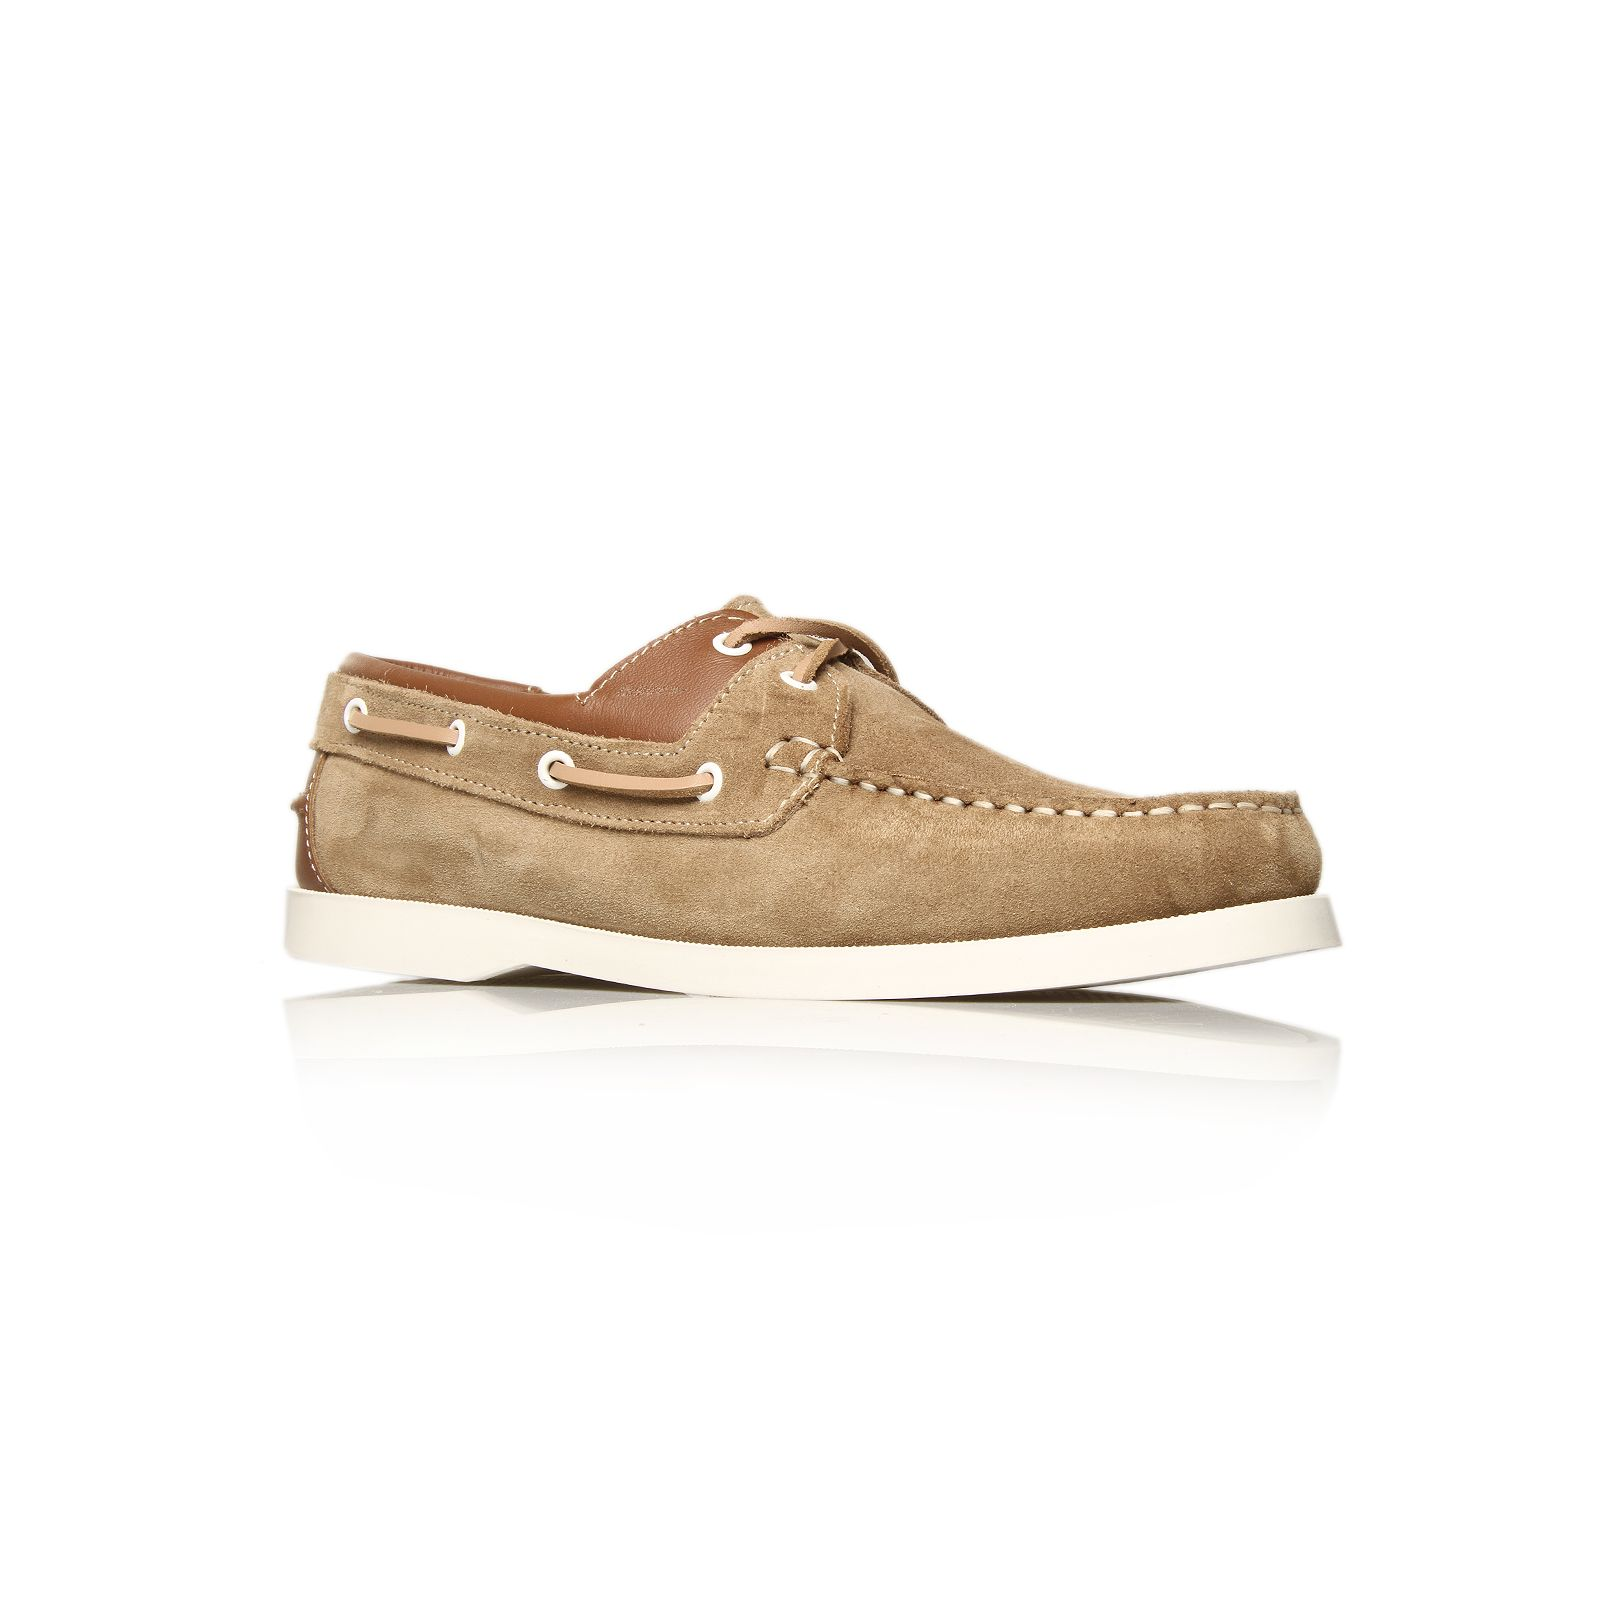 Kg Sorrento Lace-up Shoes, Taupe